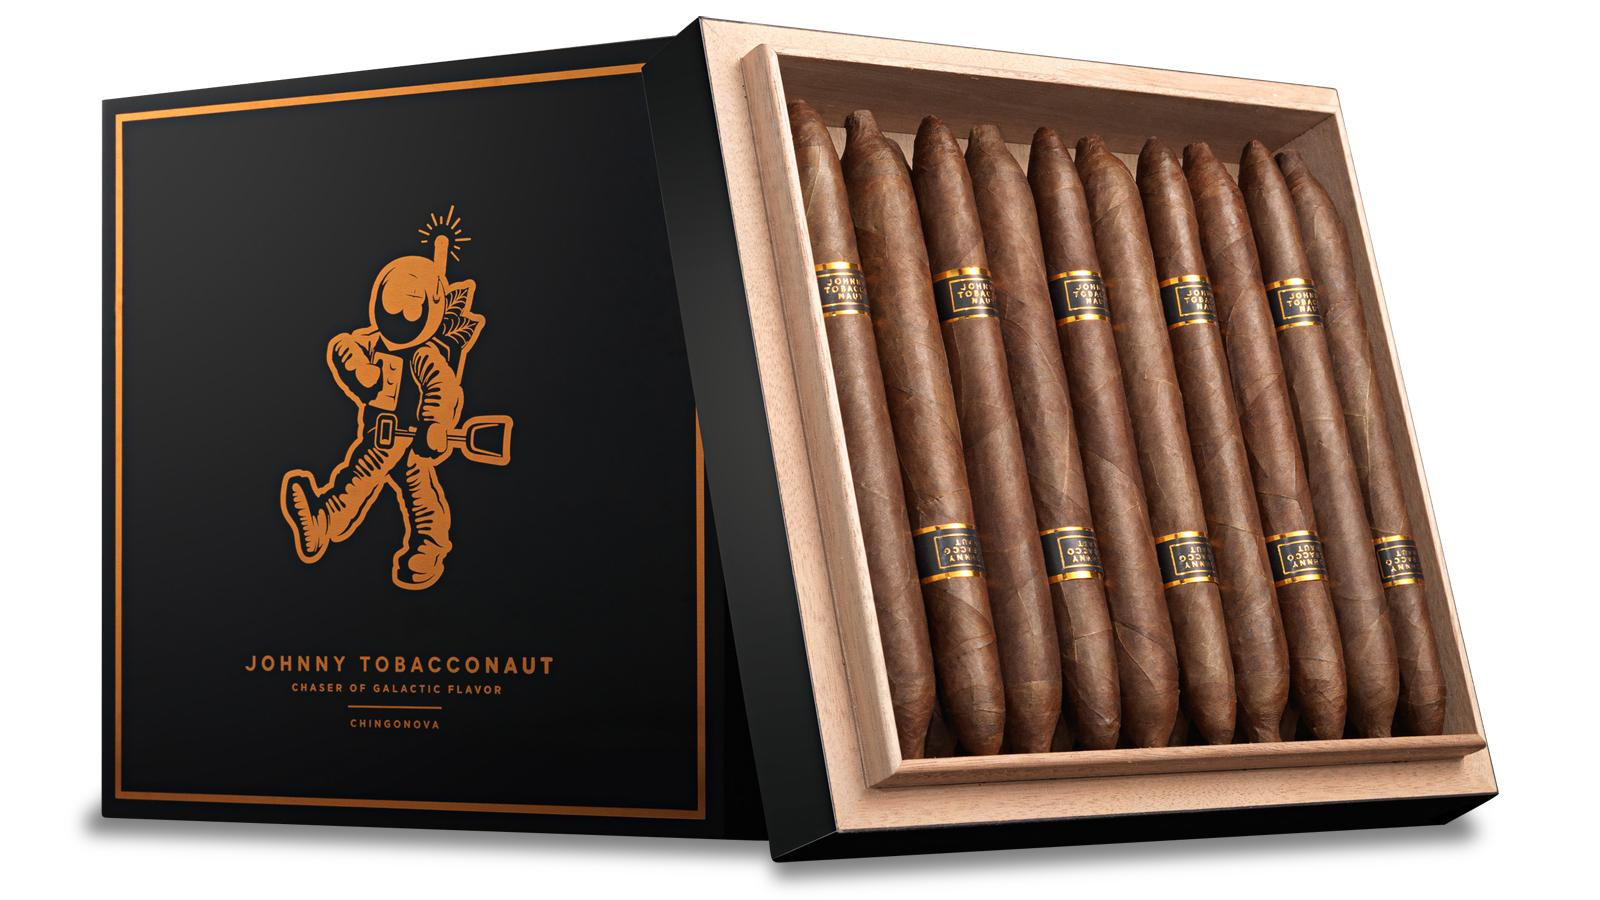 Room 101's Johnny Tobacconaut Prepares For Lift Off